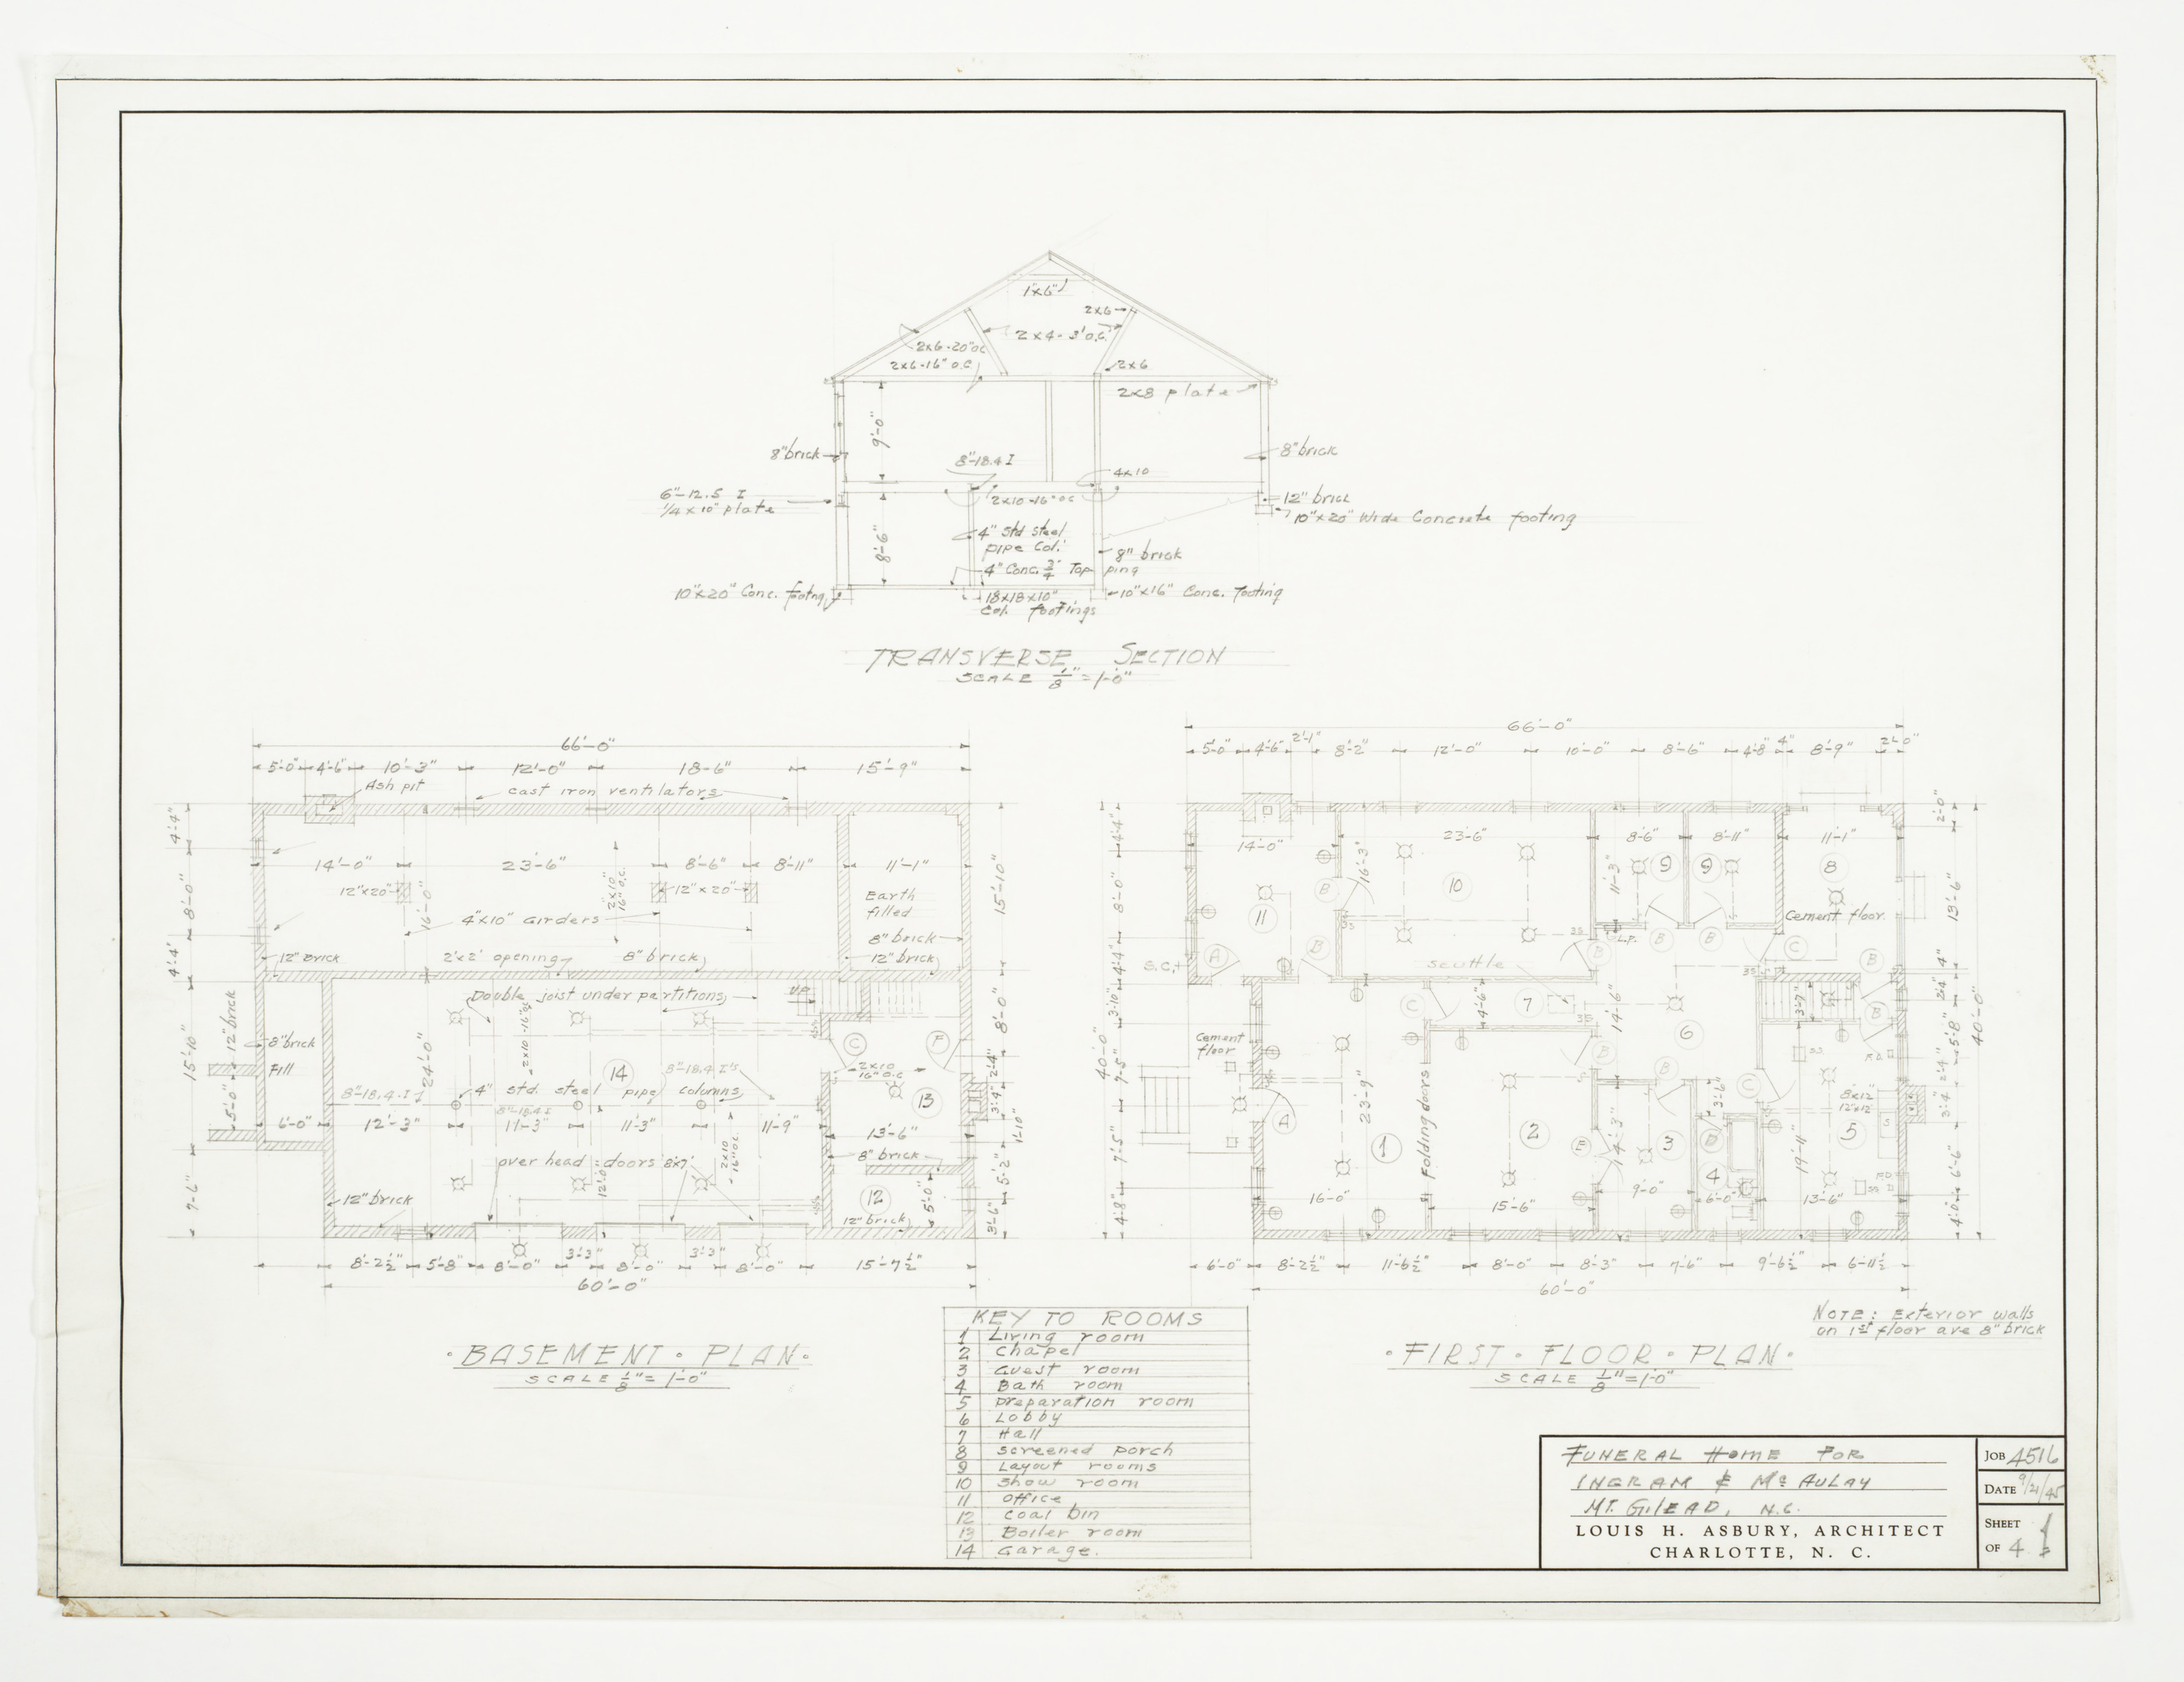 Funeral Home Floor Plans: Basement And First Floor Plans And Transverse Section